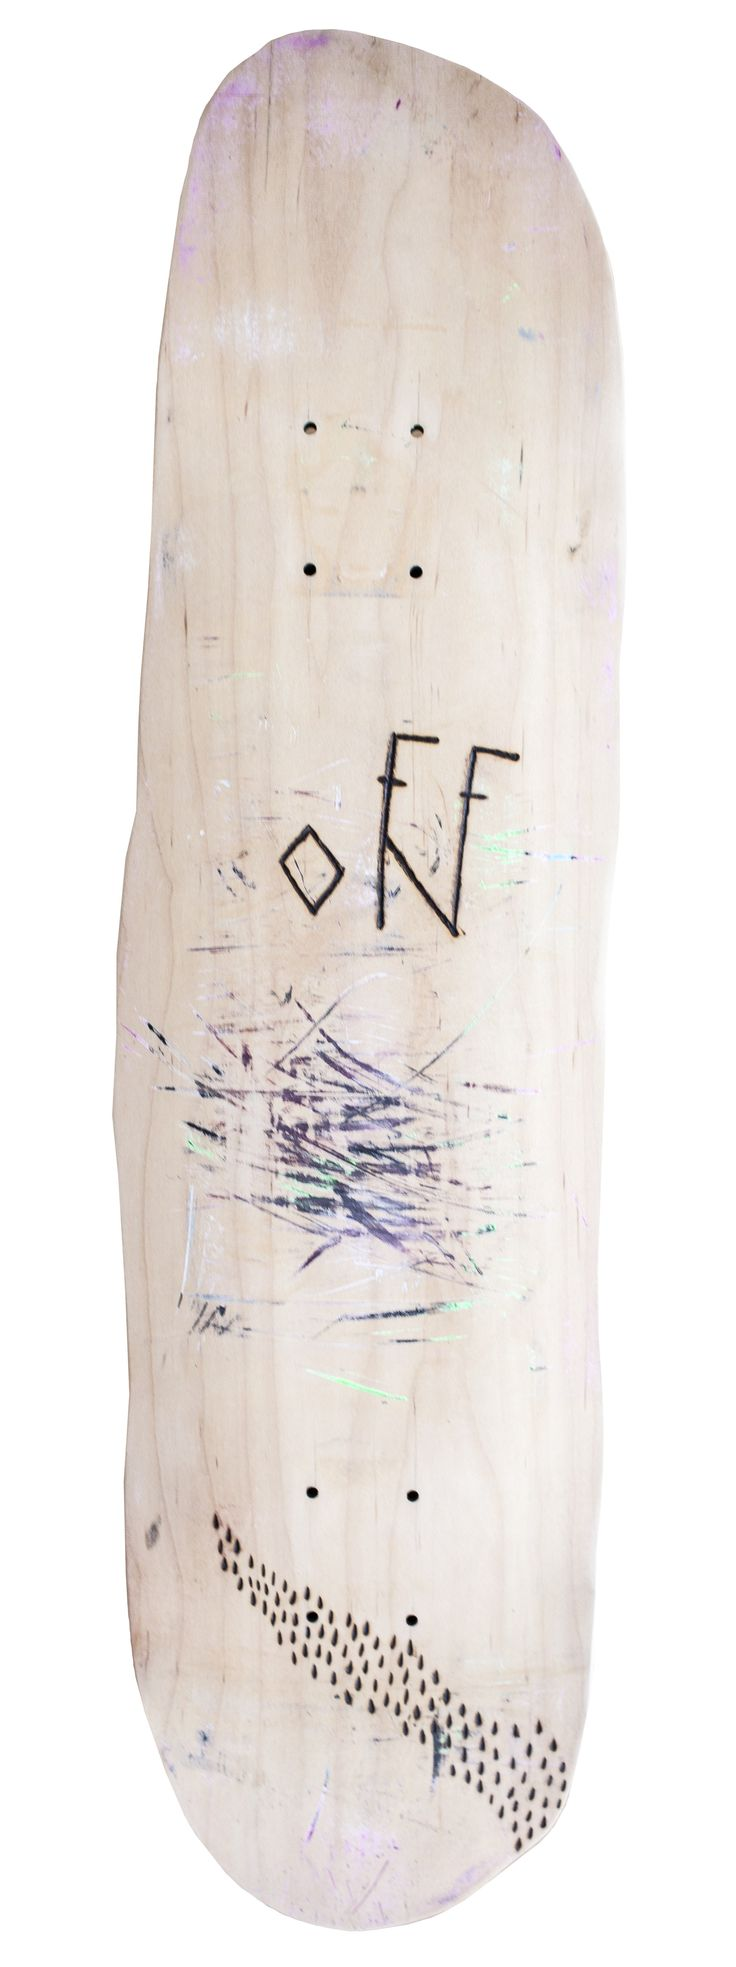 Off On part of the Skateboard Trophies Series by Luke Chiswell | Buy Affordable Art Online Exclusively on Tappan Collective